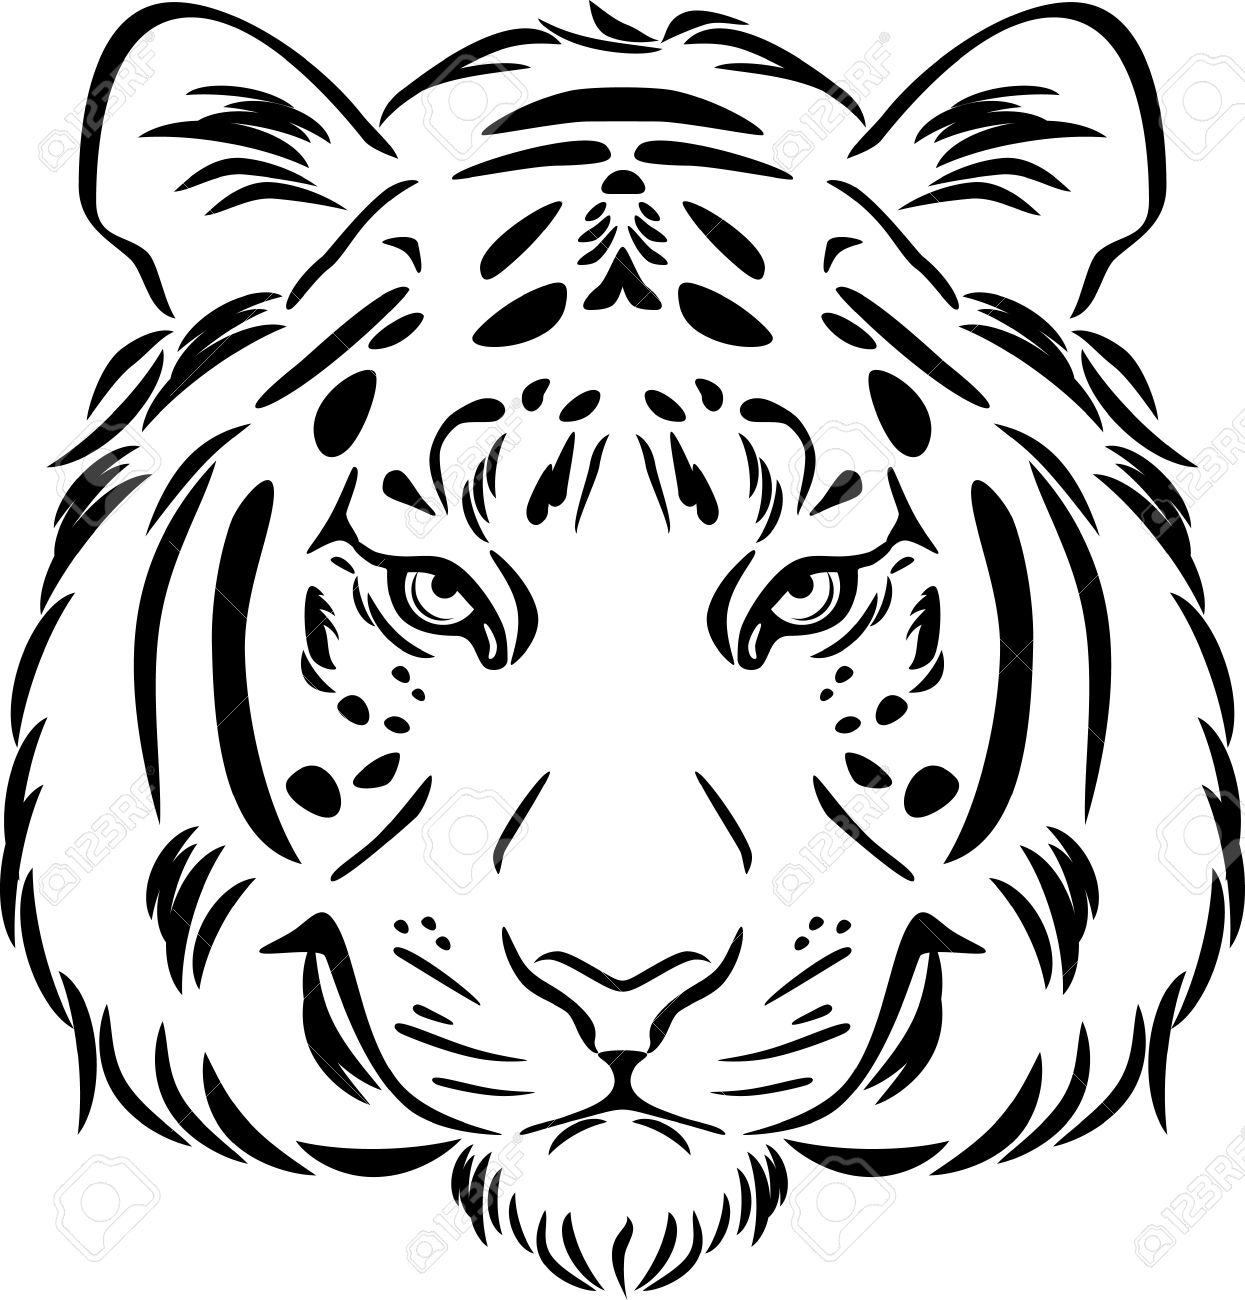 1245x1300 Tiger Head. Black And White Outline Royalty Free Cliparts, Vectors